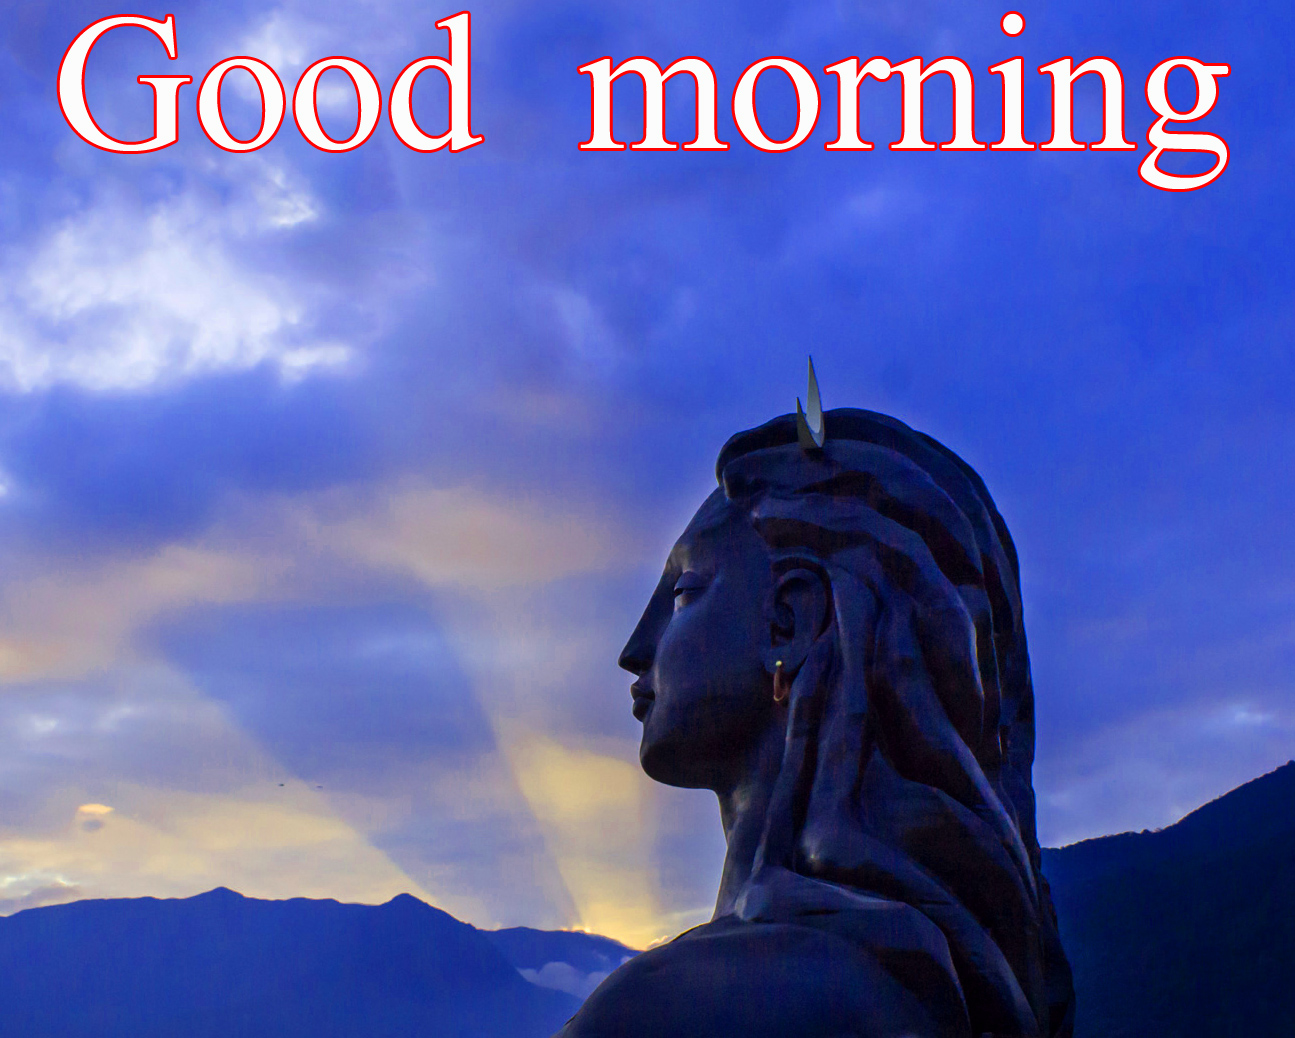 LORD SHIVA GOOD MORNING WISHES IMAGES WALLPAPER PICS DOWNLOAD IN HD